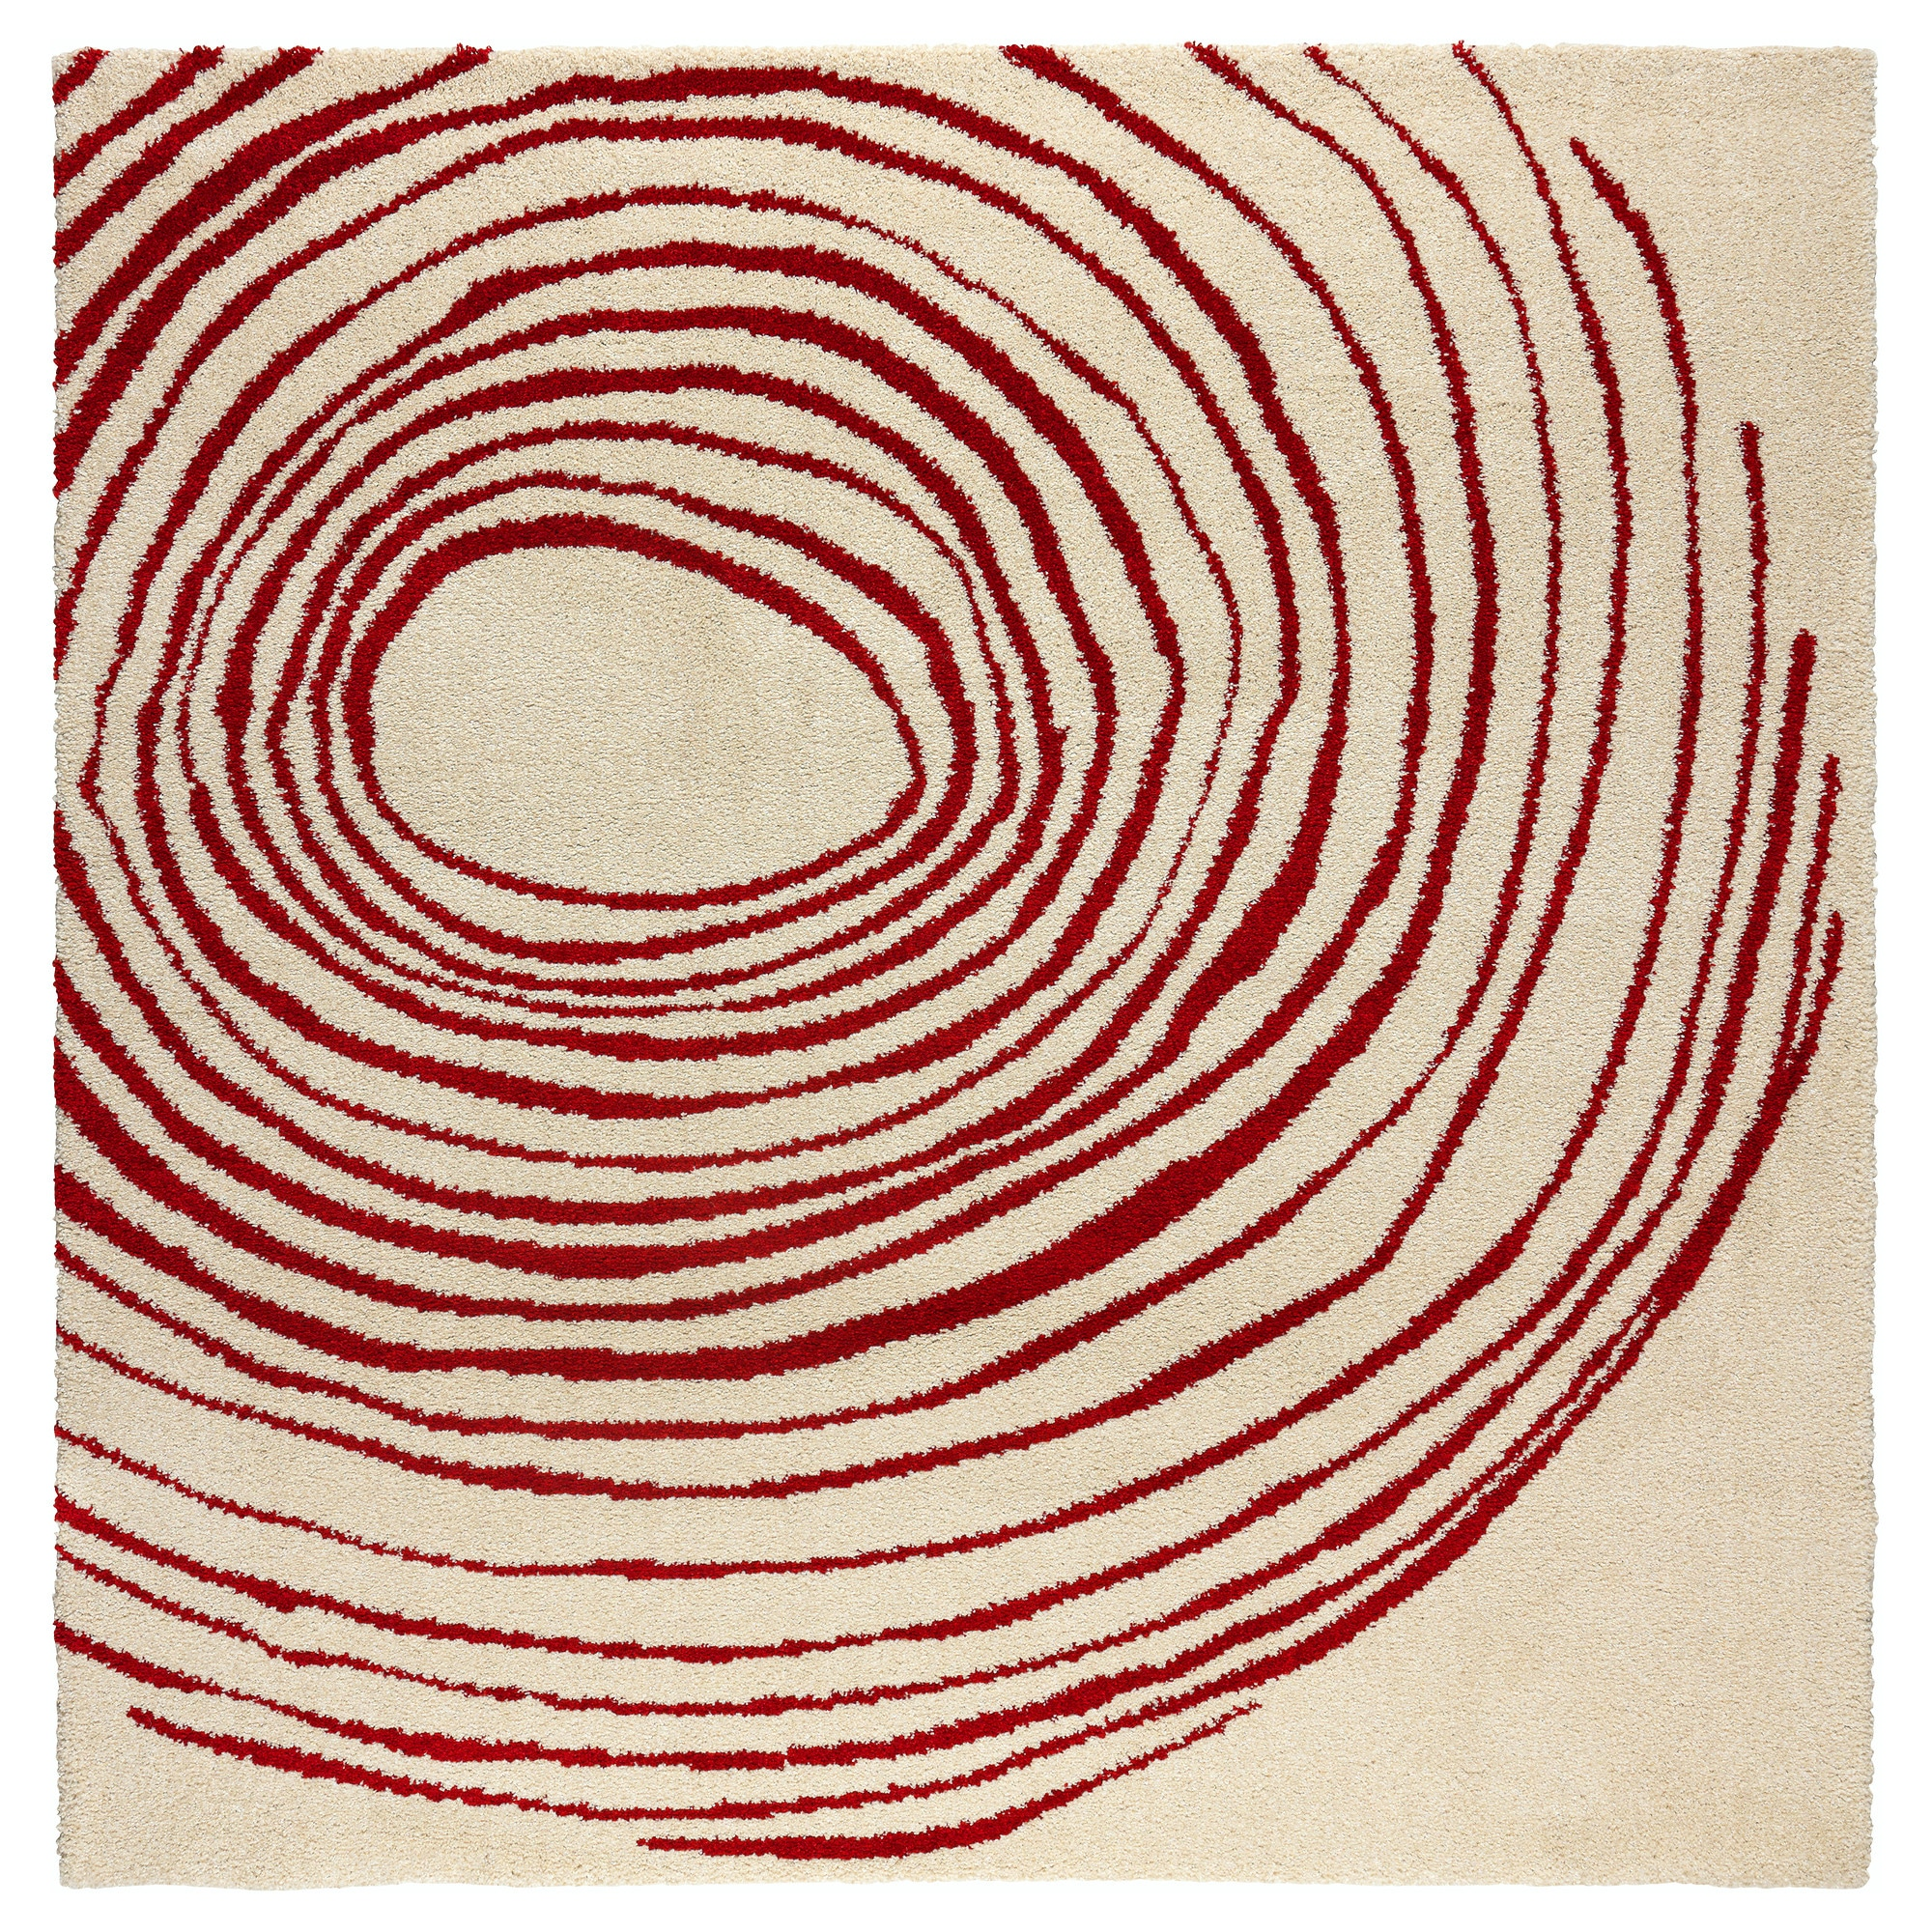 Eivor Cirkel Rug, High Pile, White, Red Length: 6 ' 7